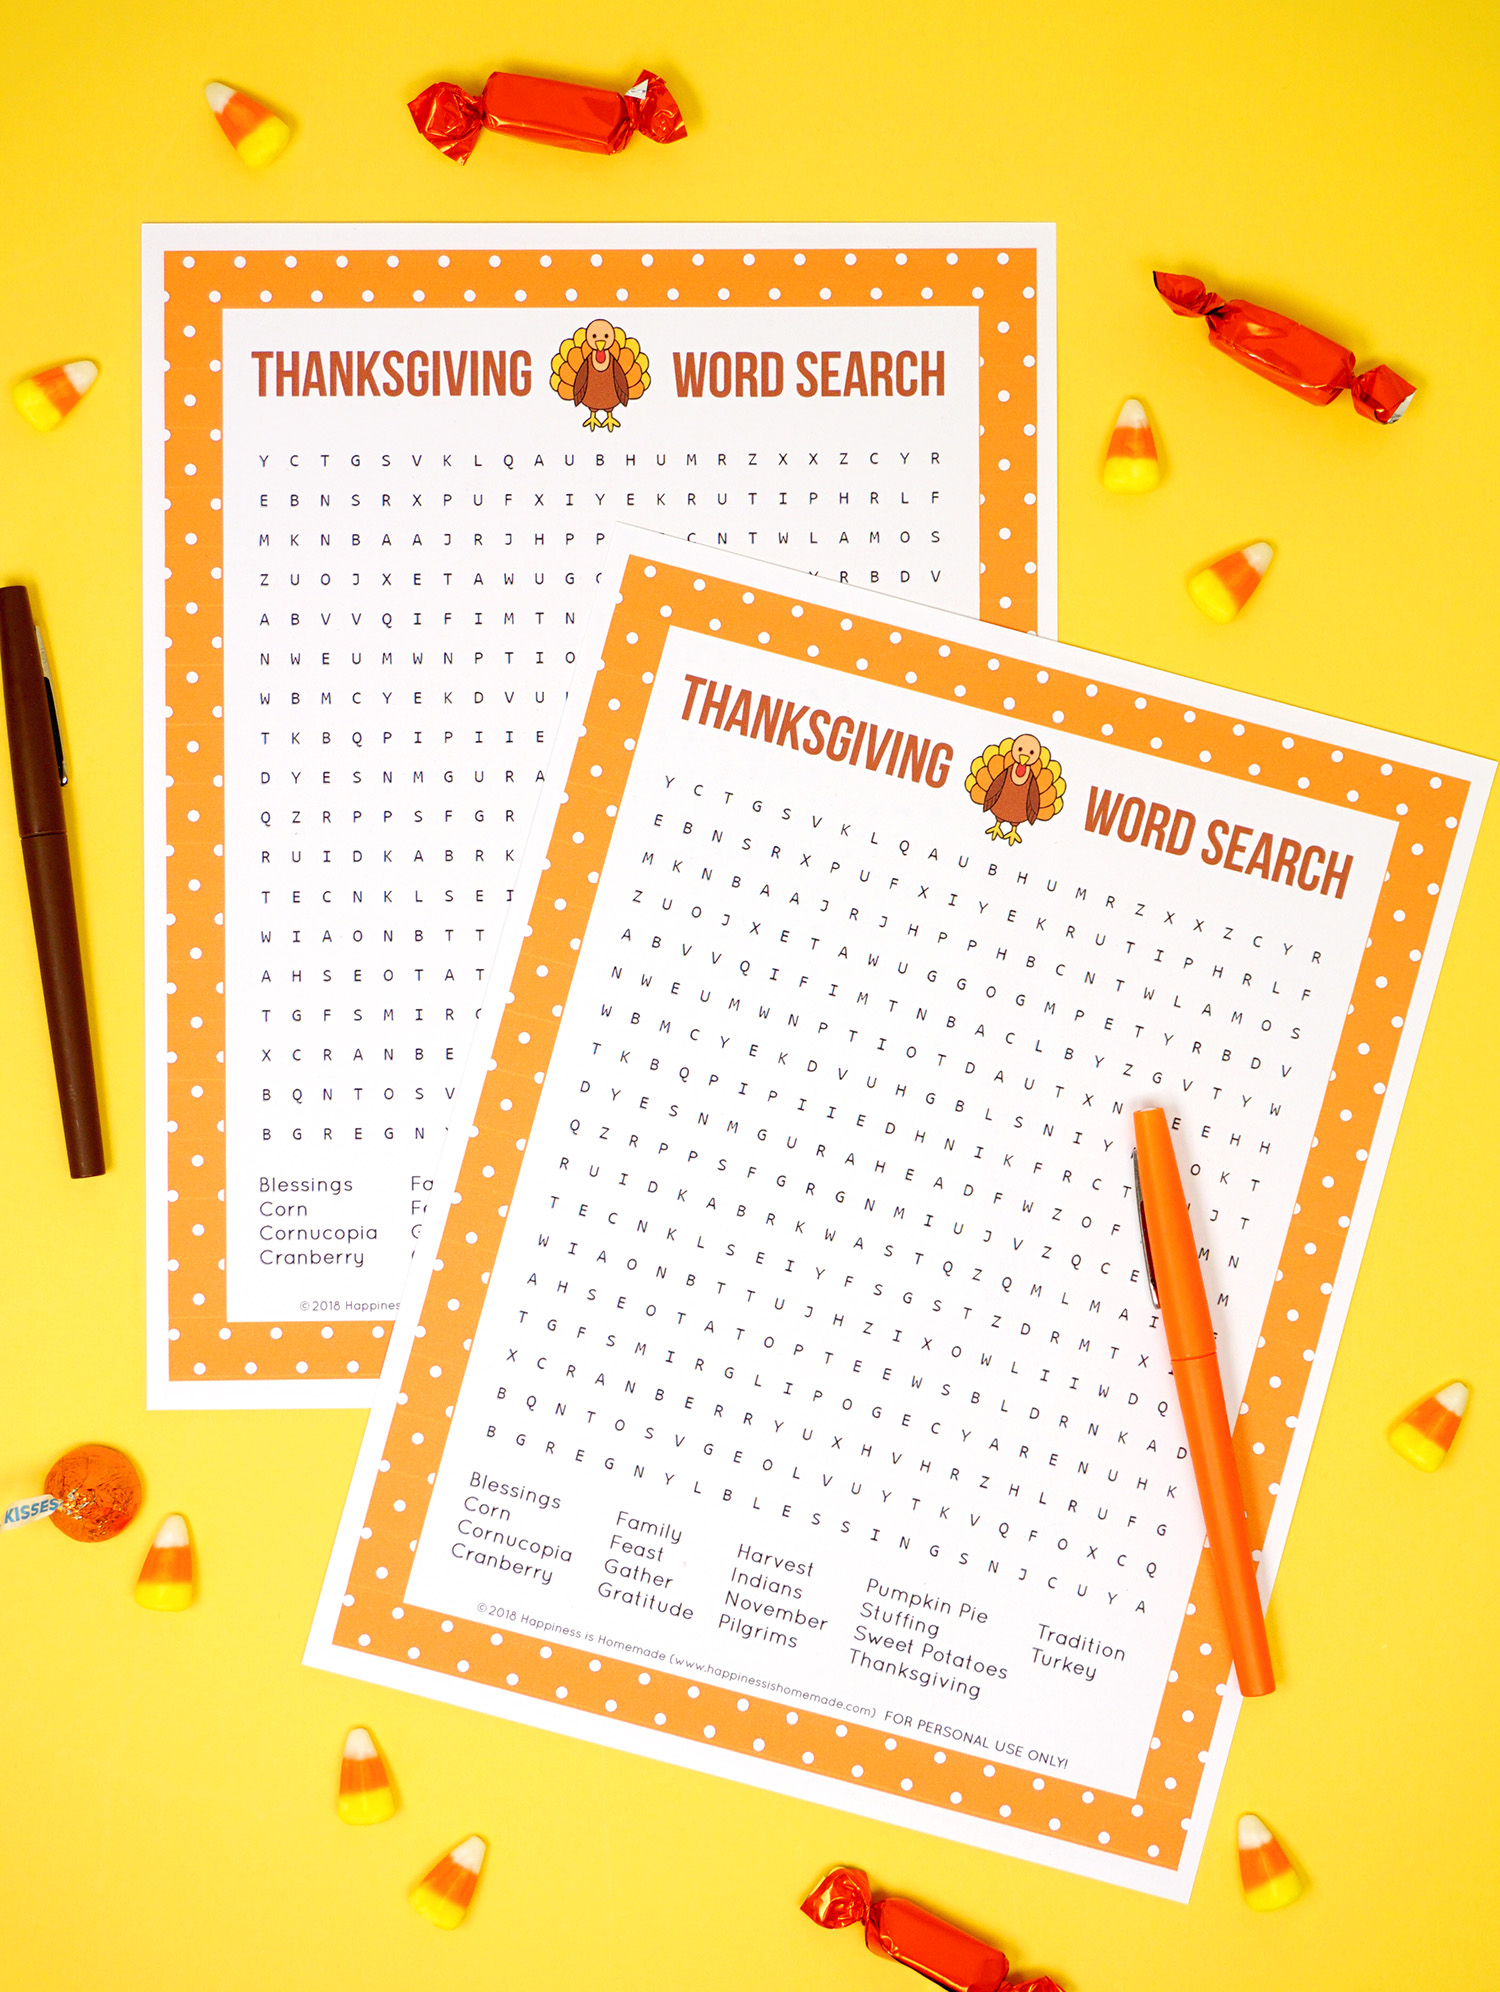 Thanksgiving Word Search Printable - Happiness Is Homemade - Printable Thanksgiving Puzzle